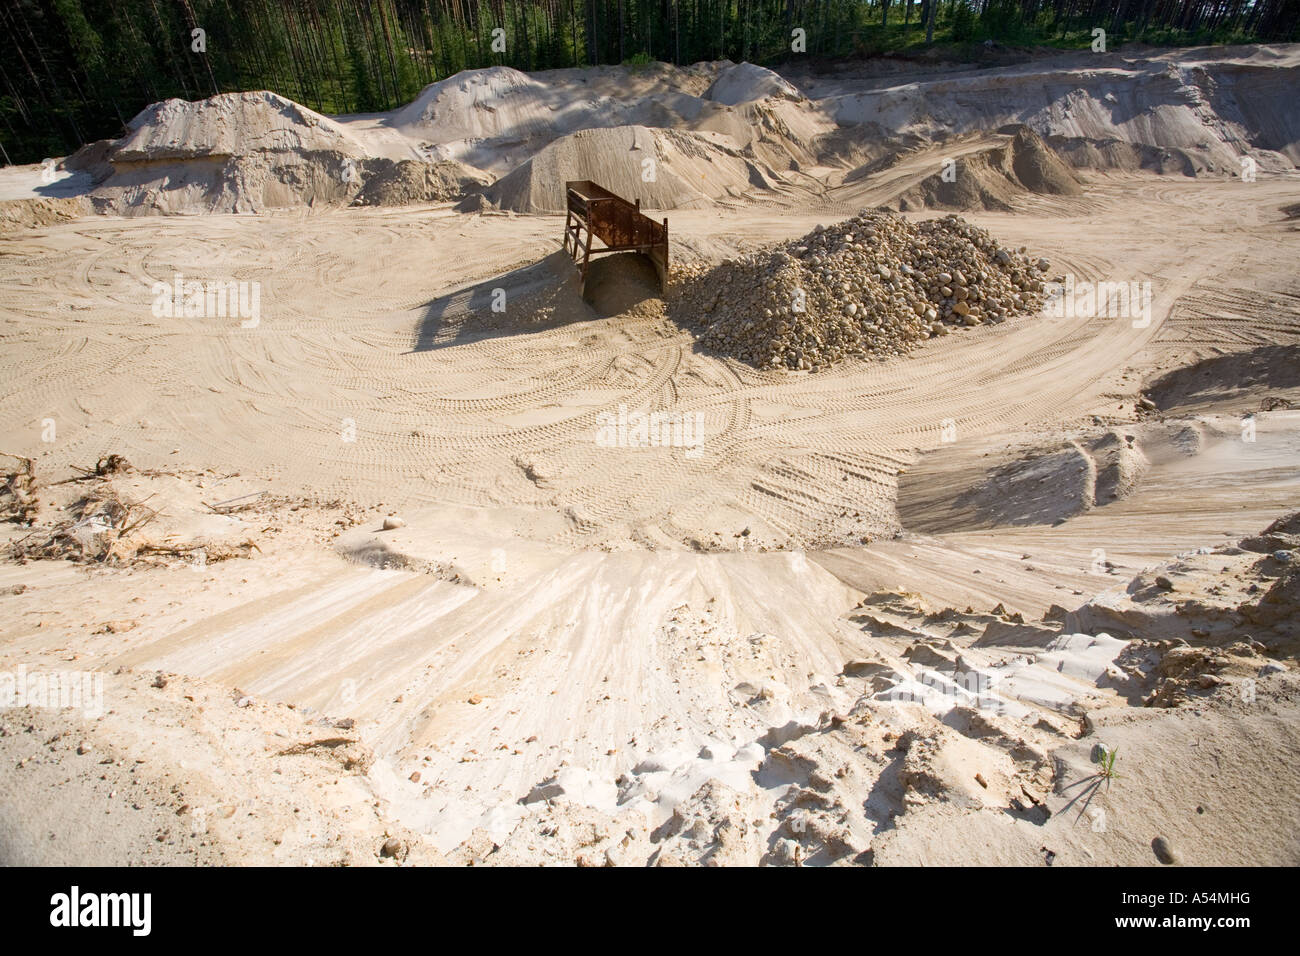 Sandpit in a sandy ridge - Stock Image